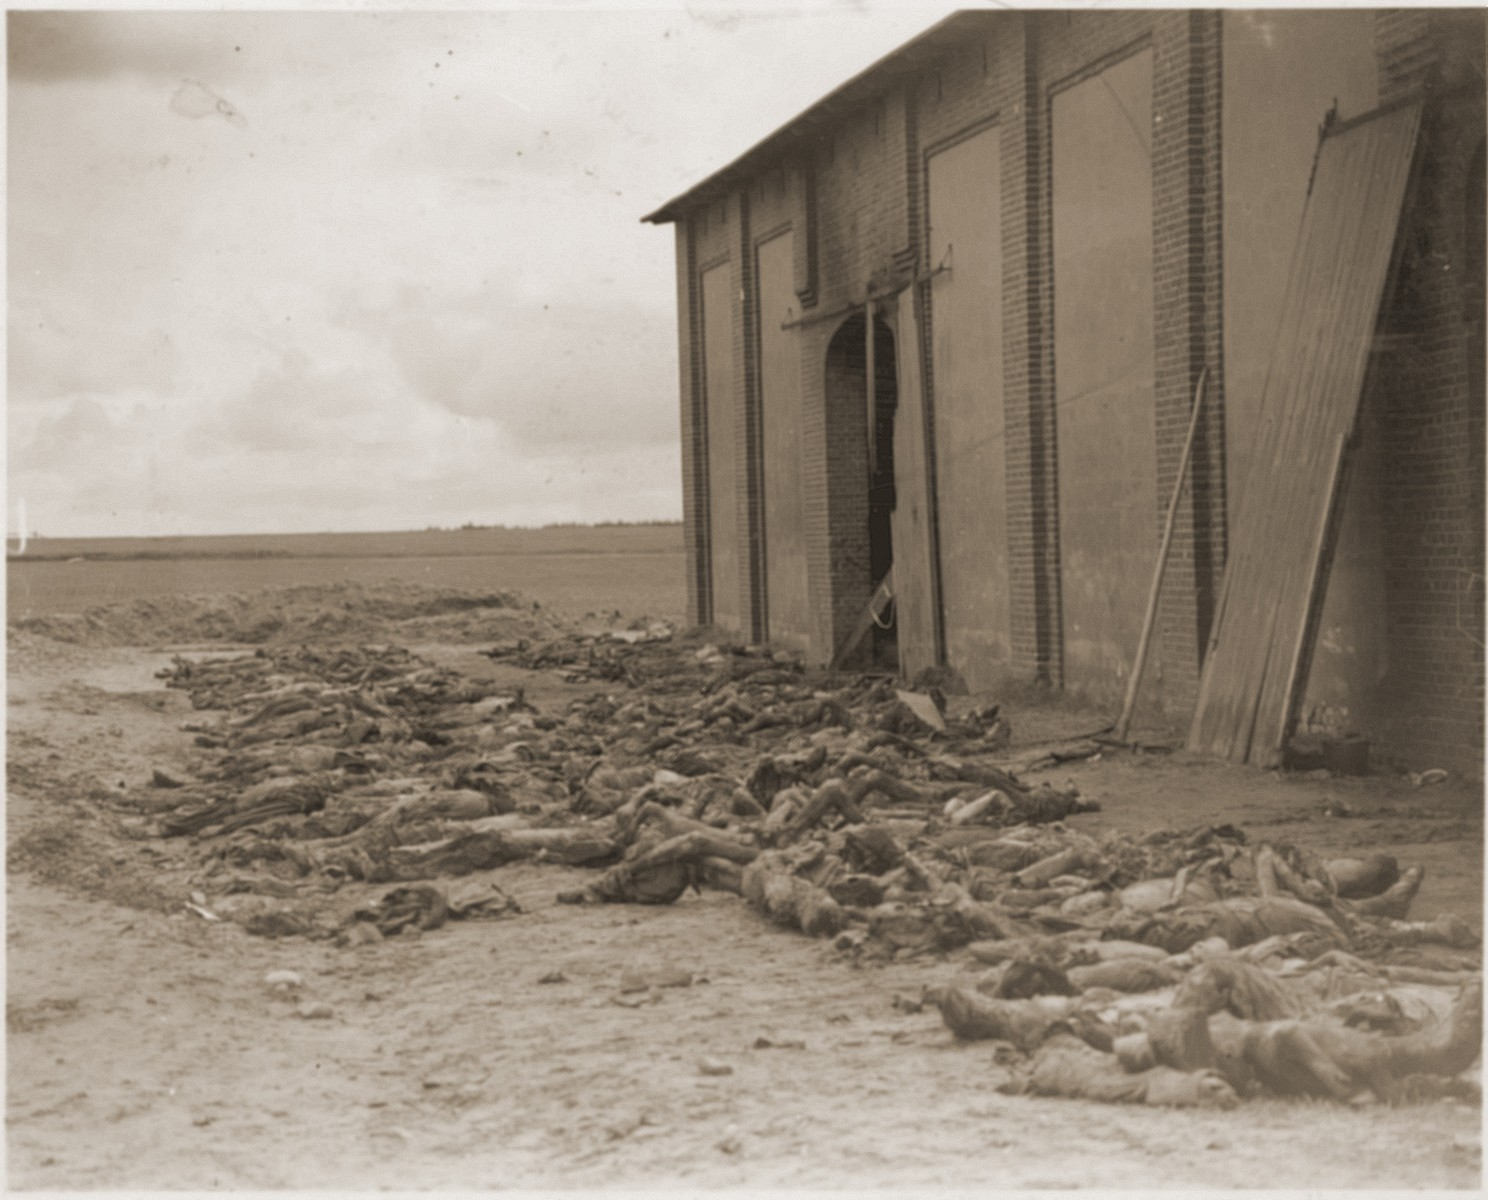 """The bodies of concentration camp prisoners killed by the SS lie outside of a barn near Gardelegen.    The original caption reads """"German civilians bury victims of Nazi sadism.  The charred bodies of victims of Nazi brutality lie waiting for their reburial by civilians [from] nearby Gardelegen, Germany."""""""